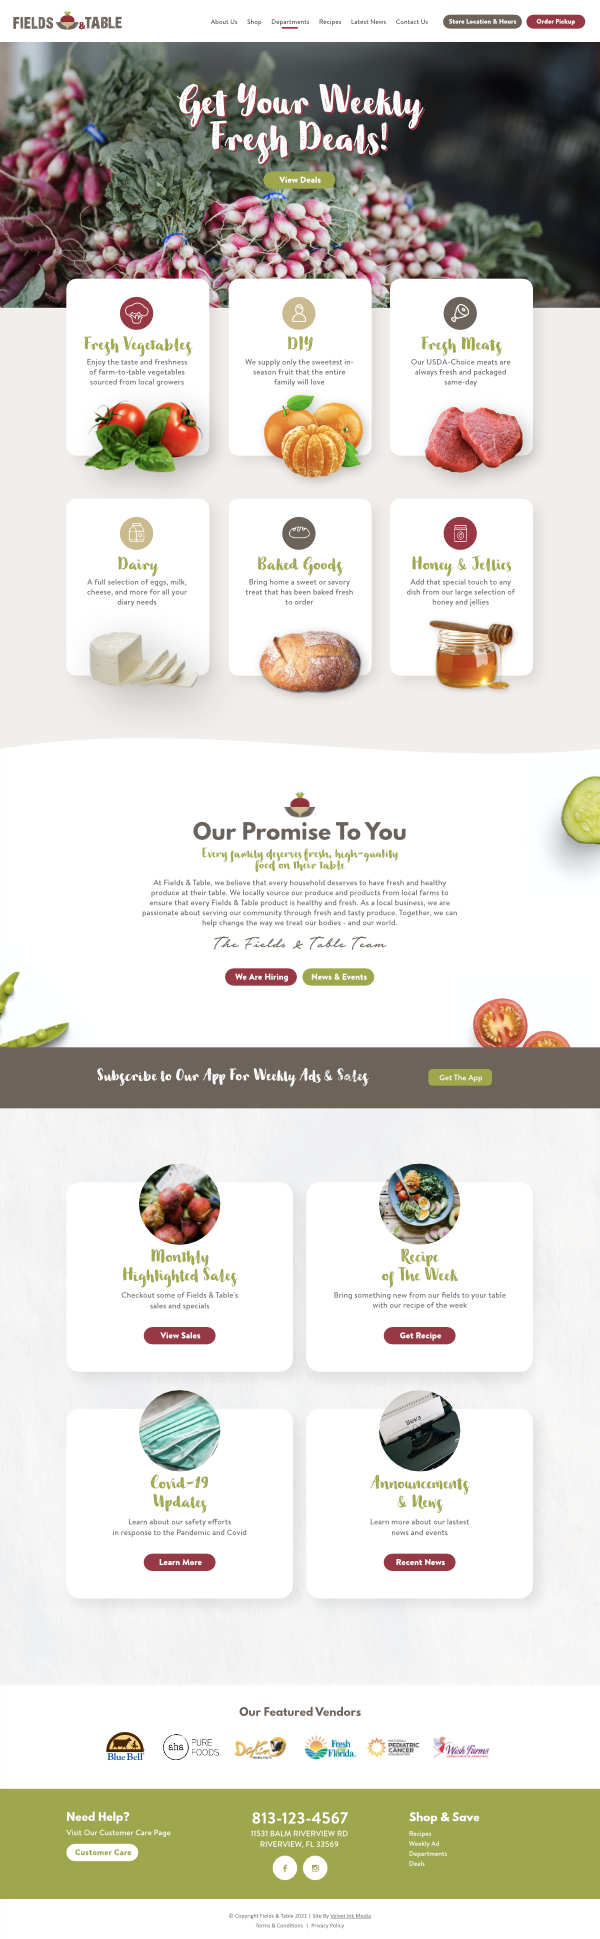 fields and table home page design